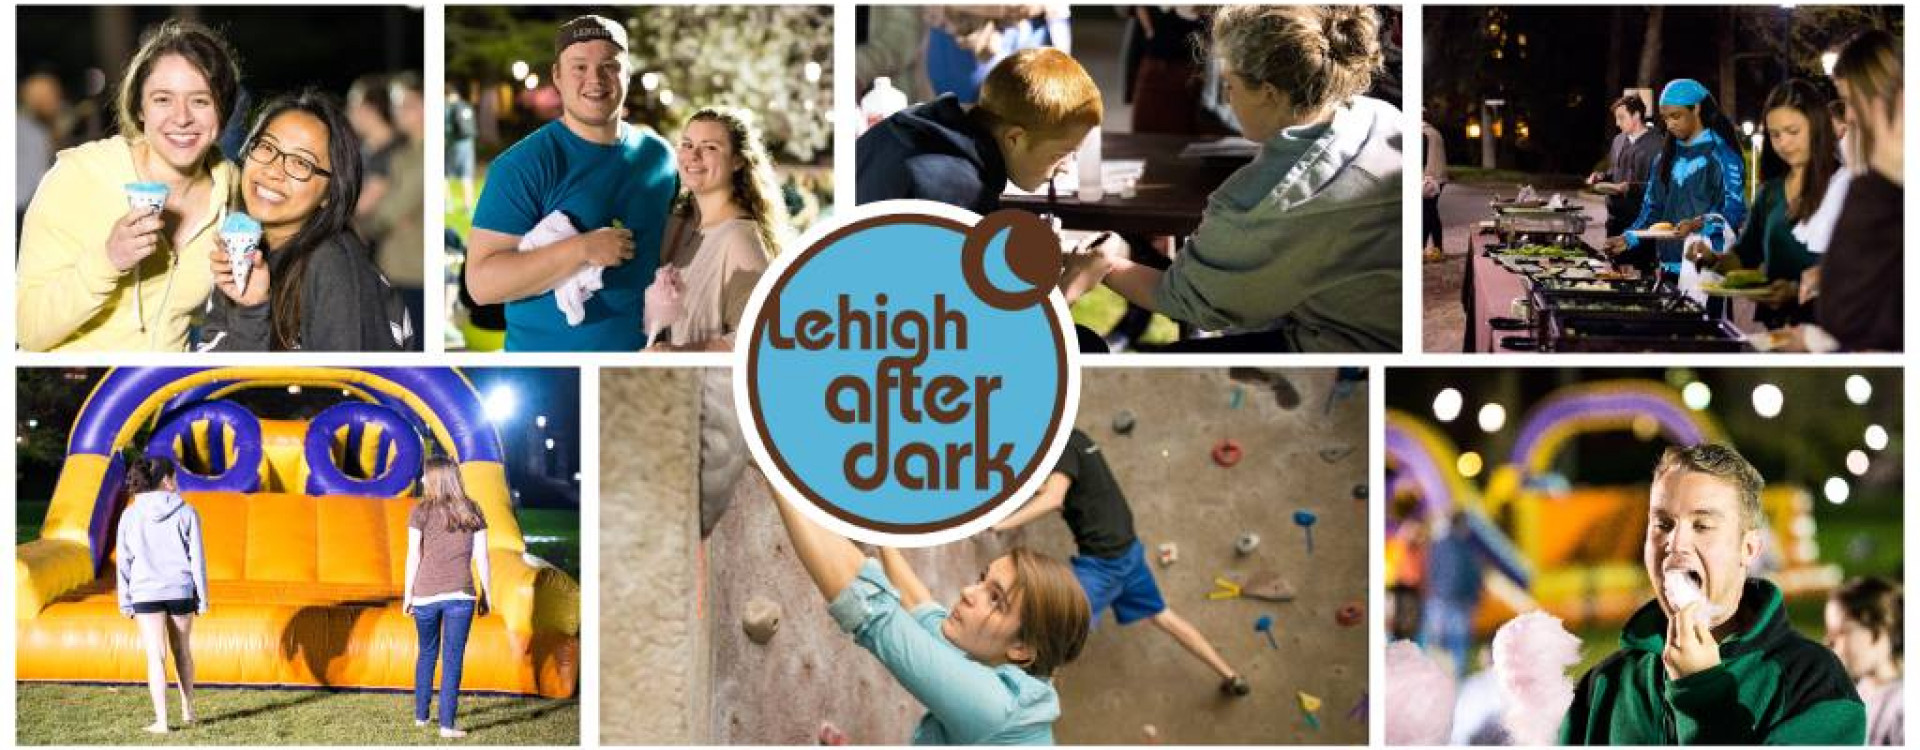 Lehigh After Dark activities